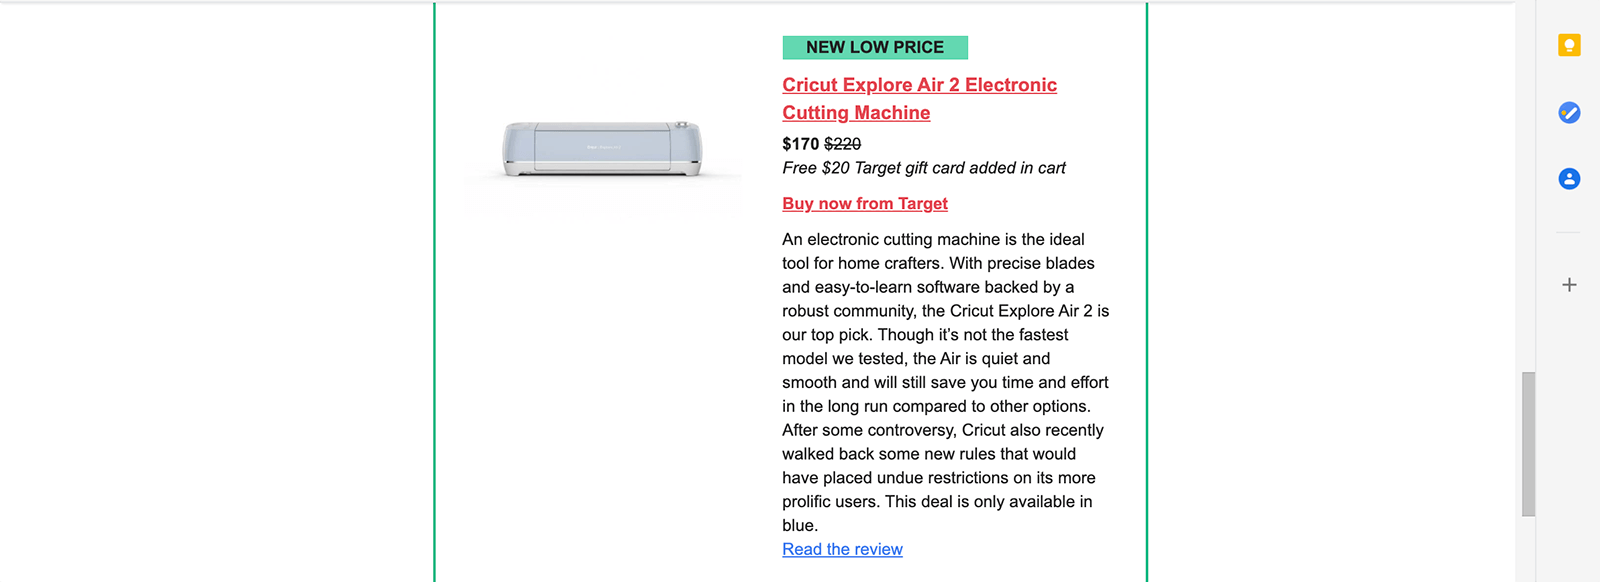 Affiliate Email Example from Wirecutter